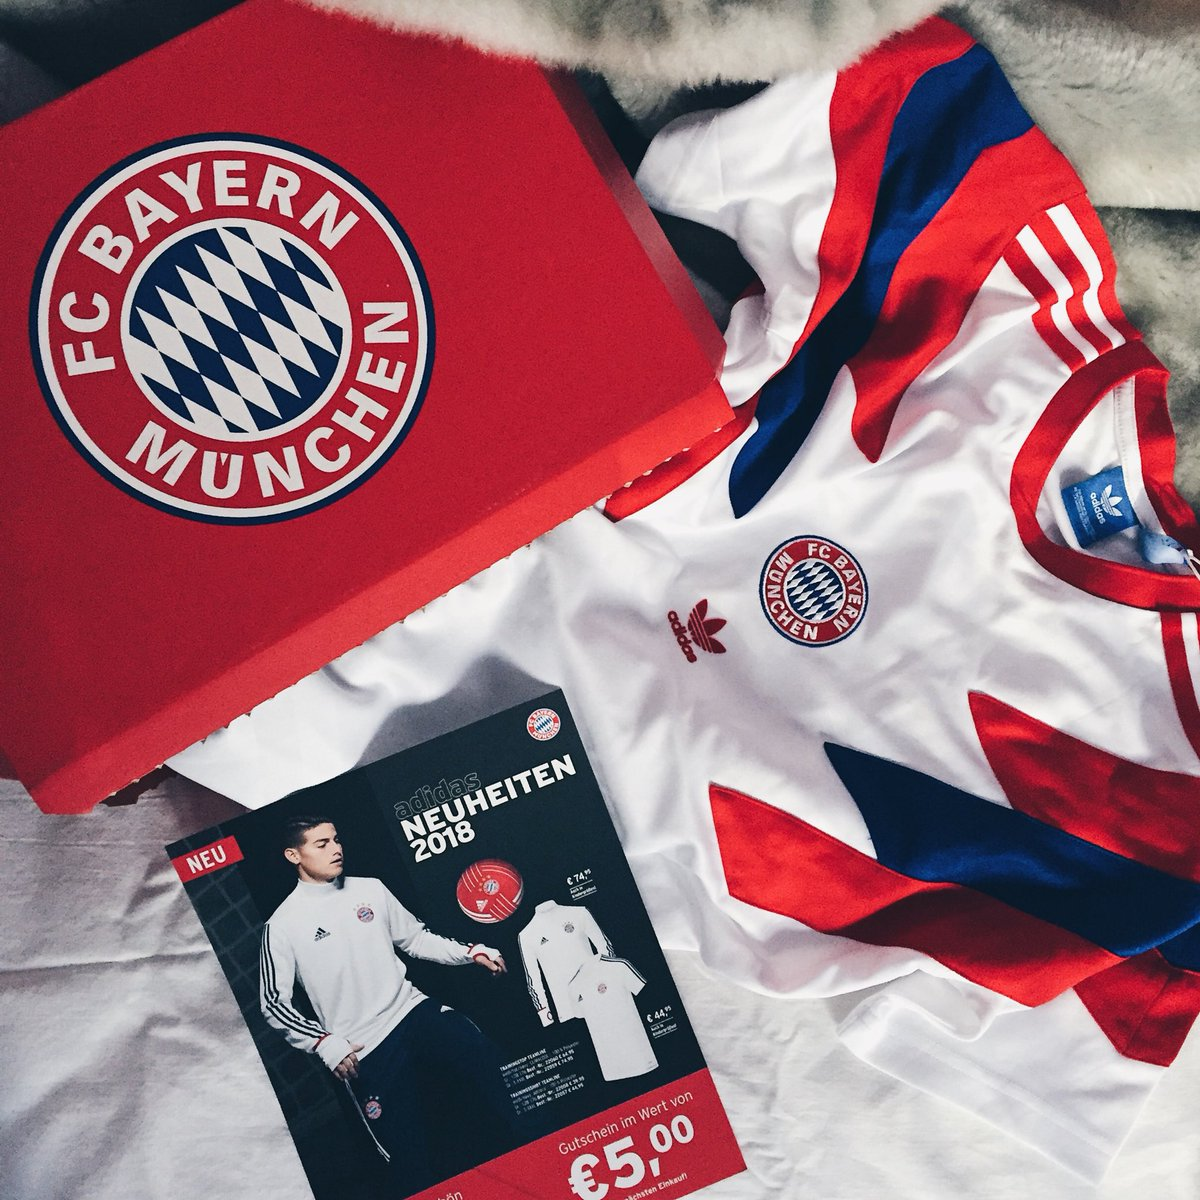 RT @starryeyeing: A certain @FCBayern delivery woke me up today 😍 https://t.co/4K5Kfh4ExM